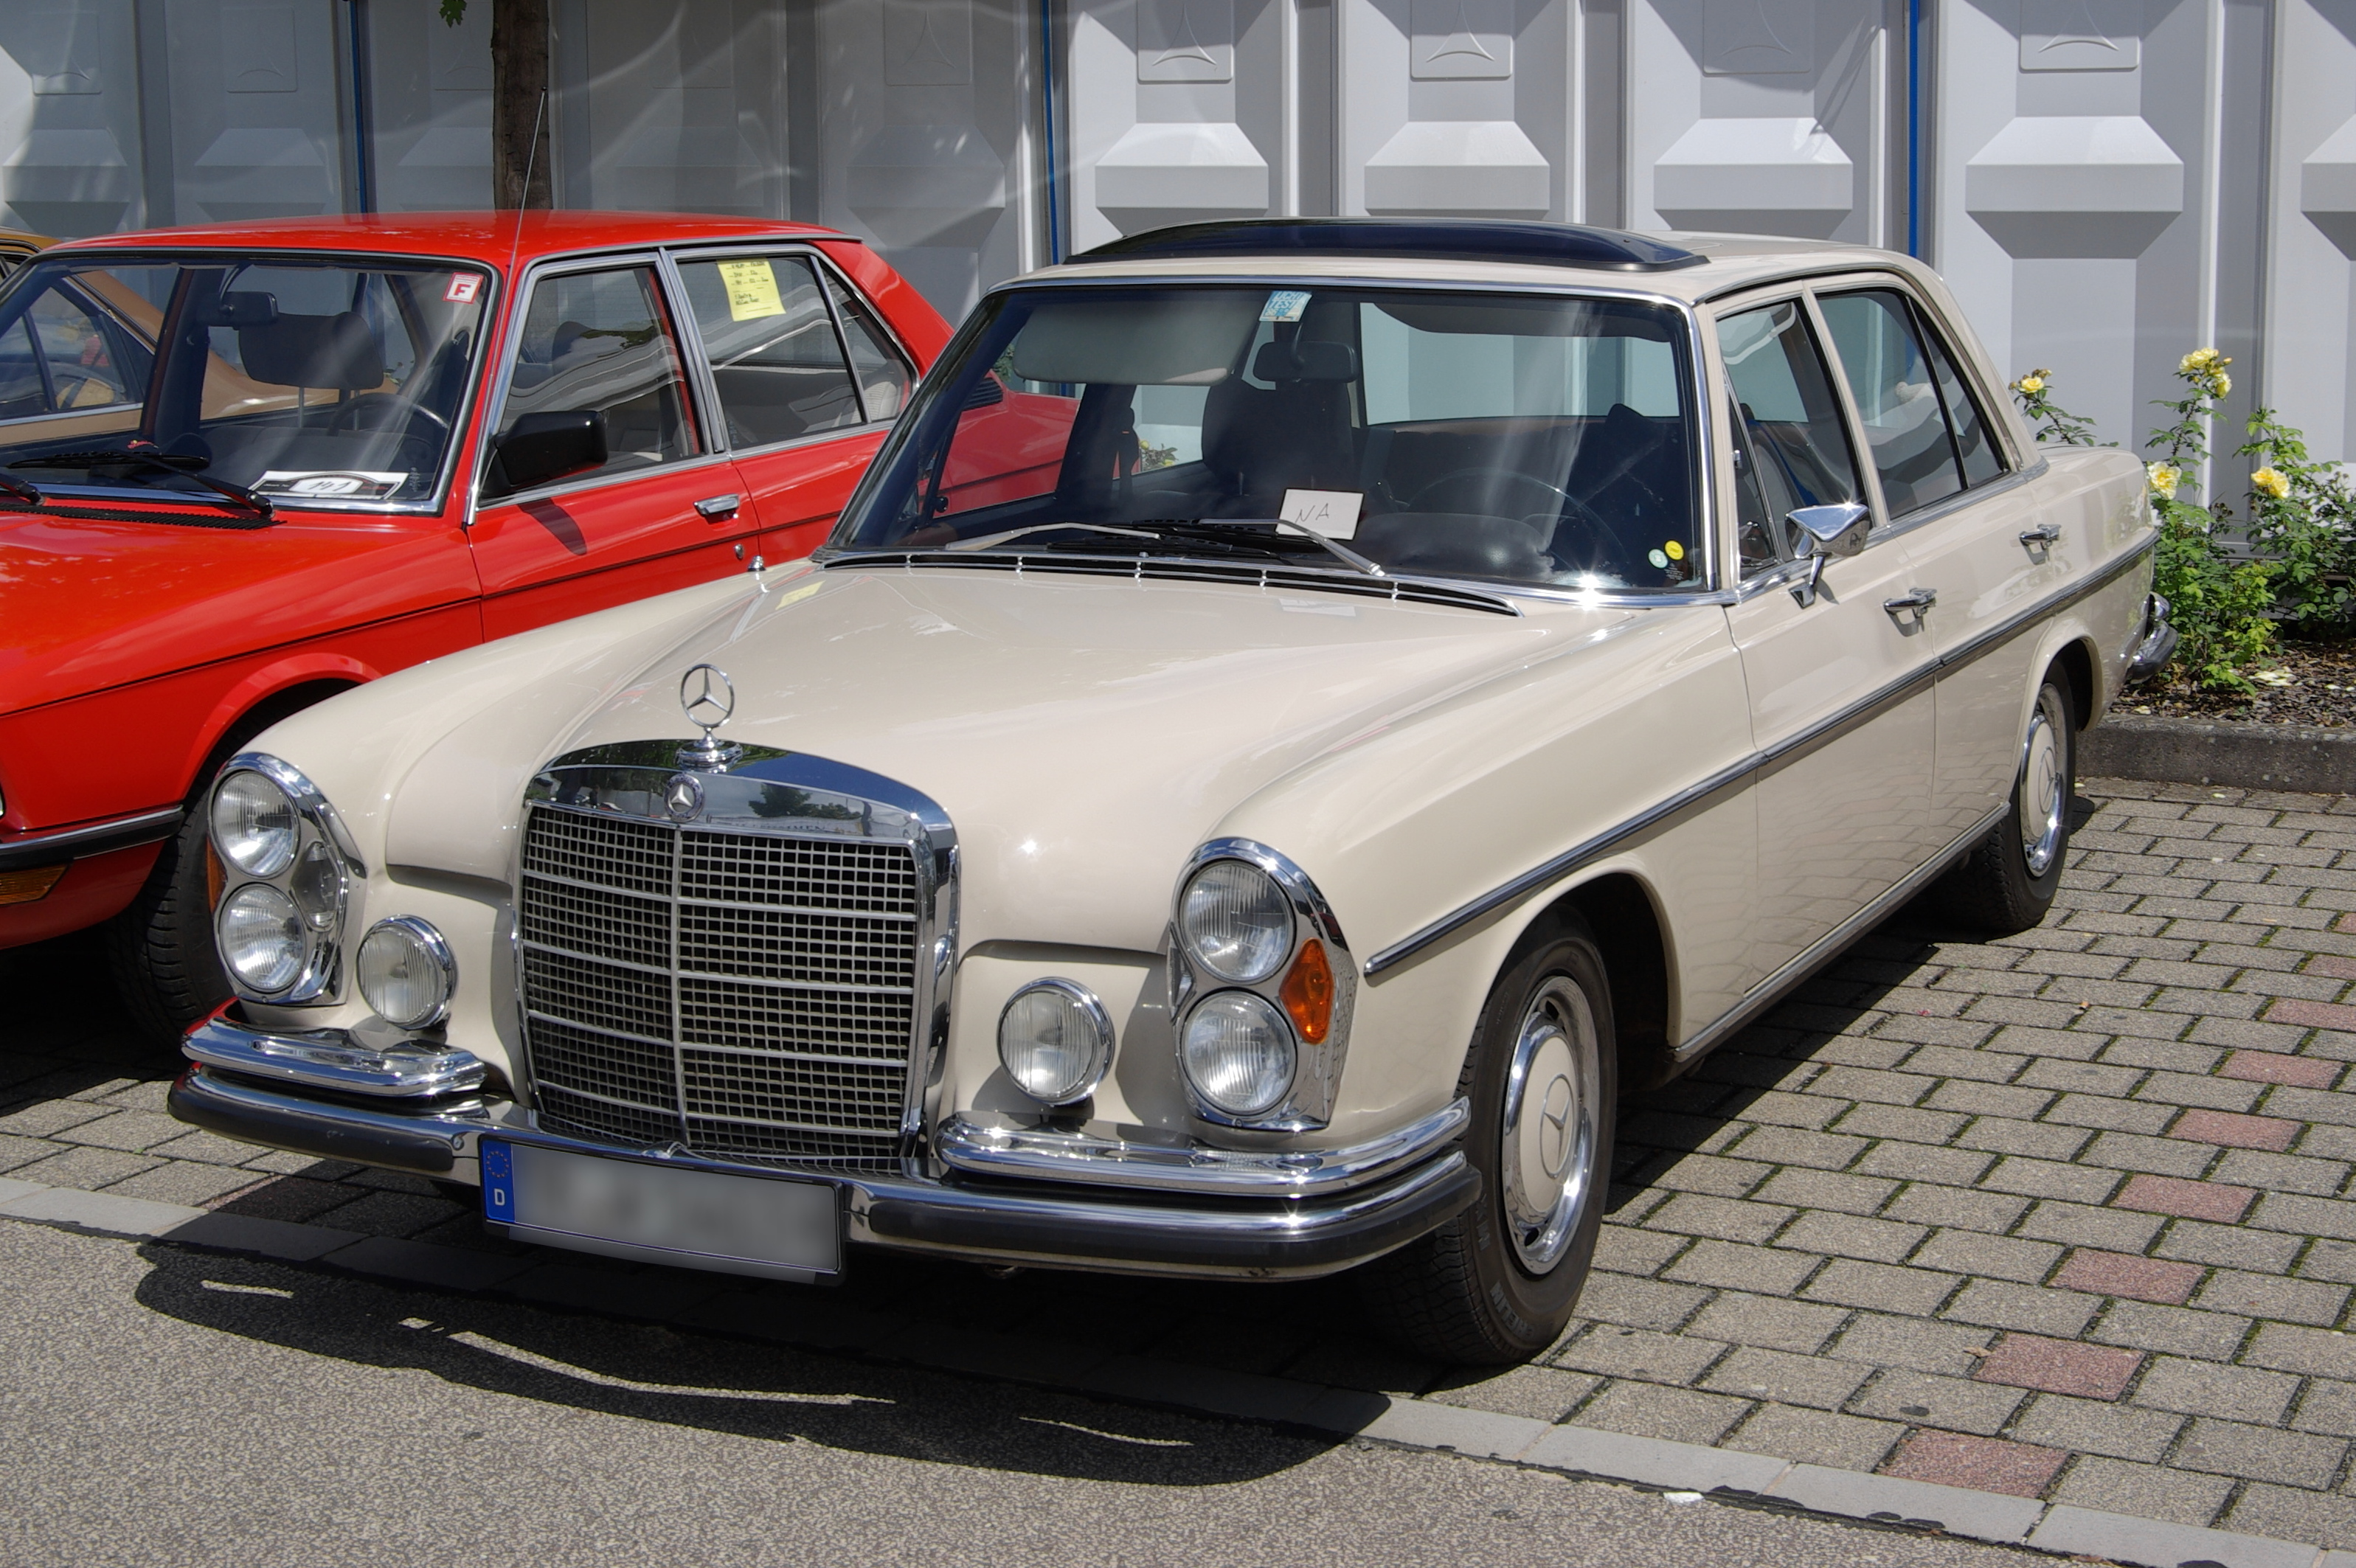 Mercedes s klasse w108 on pinterest mercedes benz for Mercedes benz of cleveland